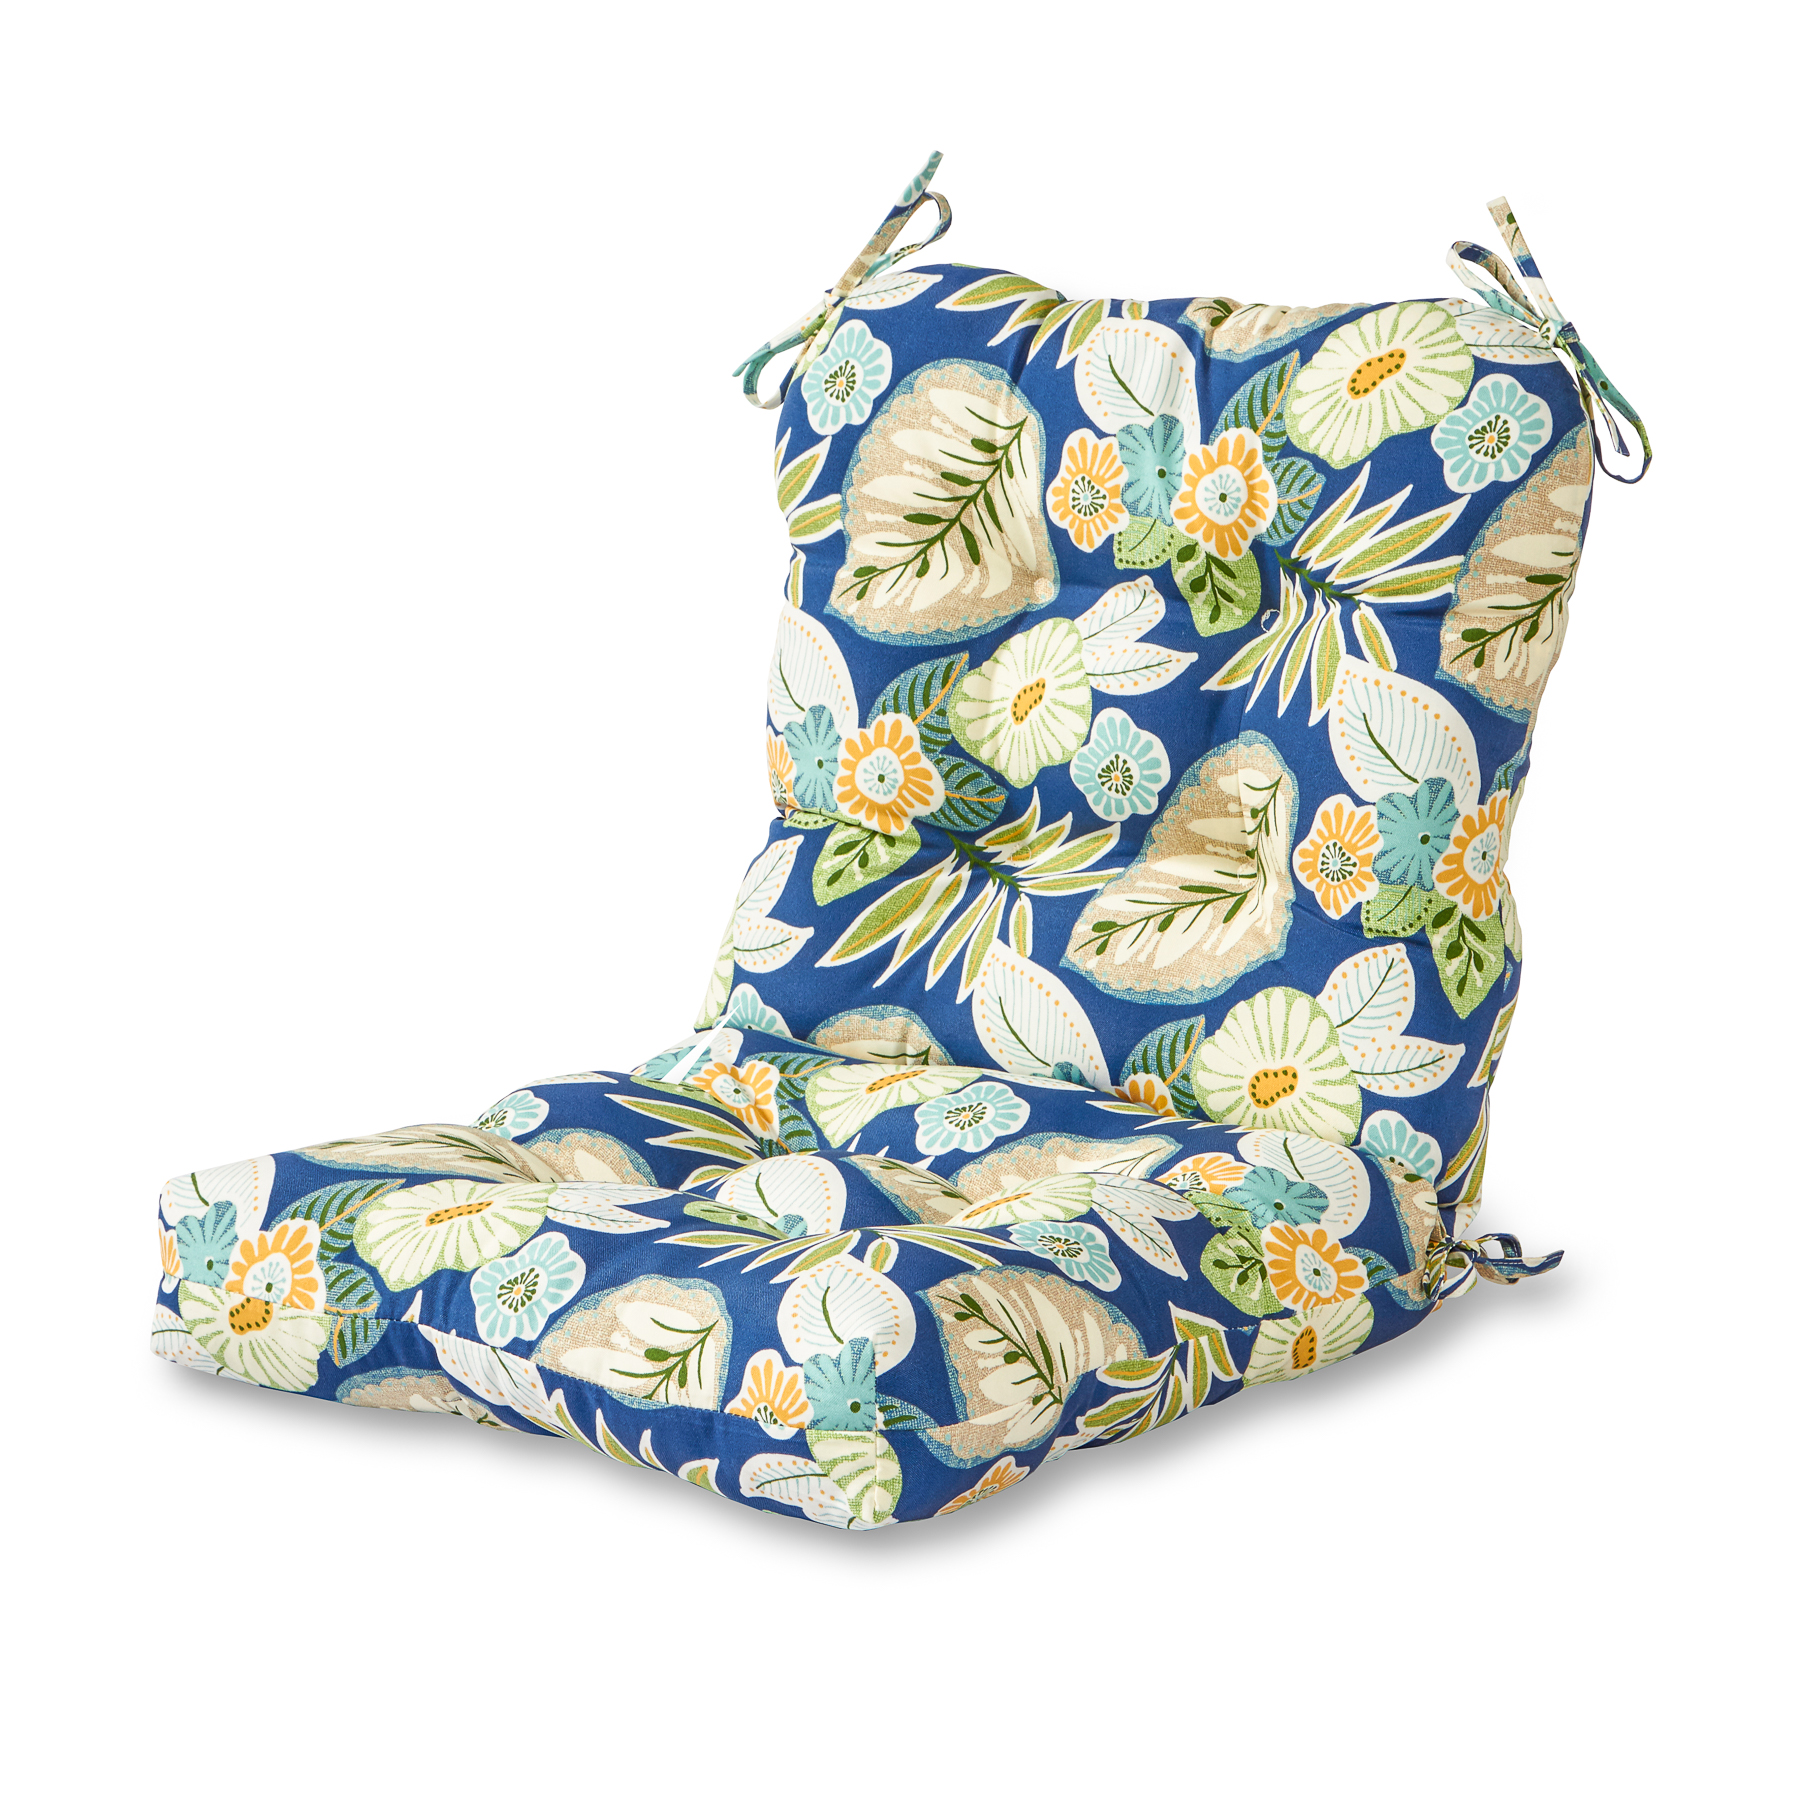 Greendale Home Fashions Marlow Outdoor Chair Cushion